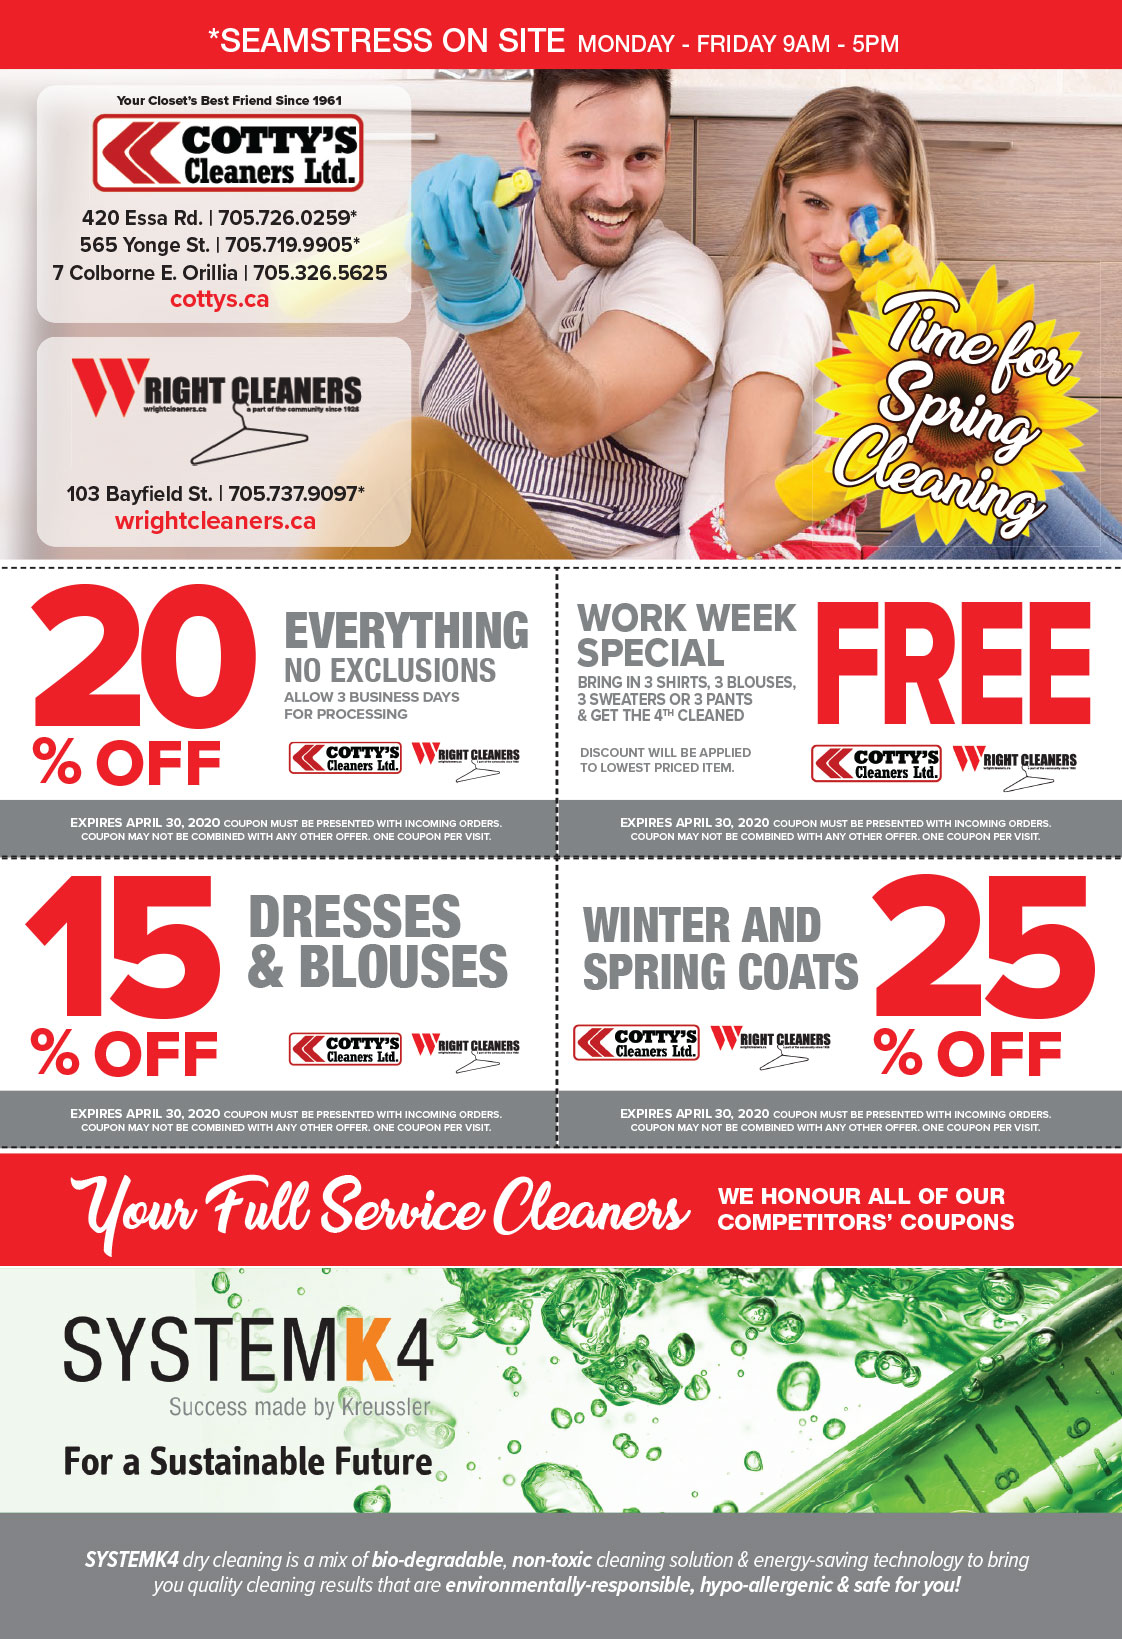 Cottys Cleaners - Dry Cleaning Coupons